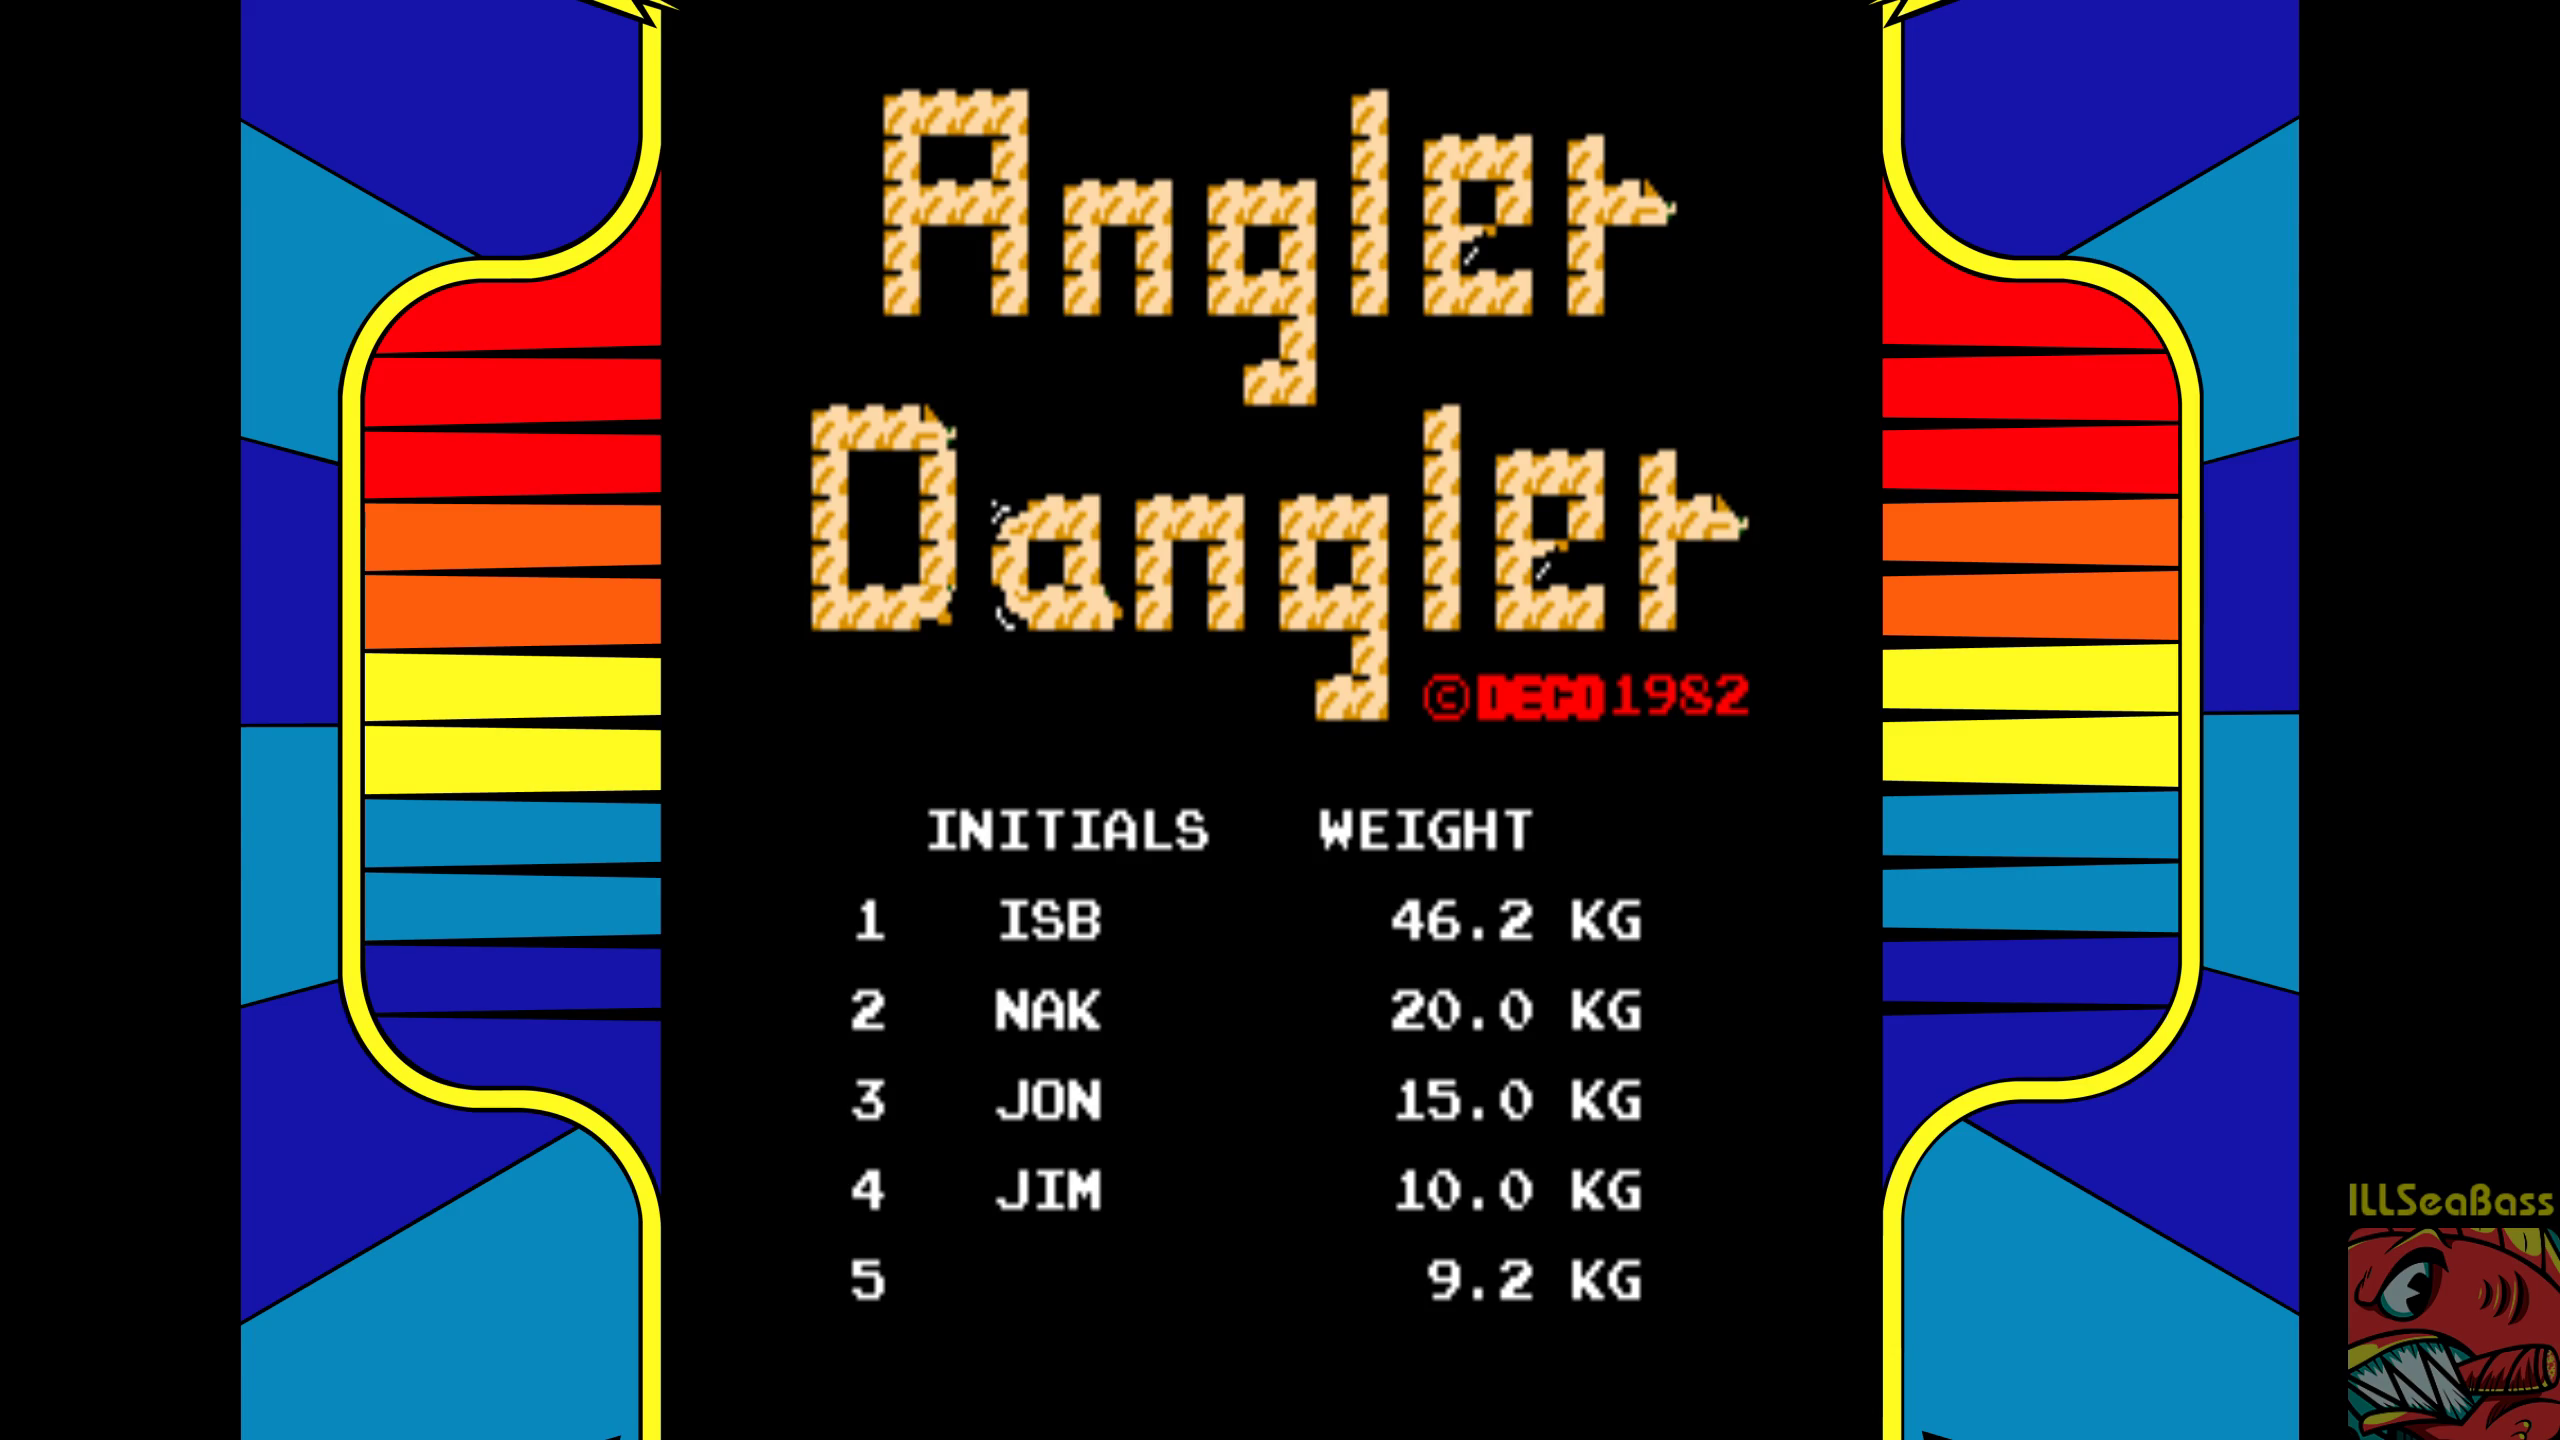 ILLSeaBass: Angler Dangler [DECO Cassette] [cadanglr] (Arcade Emulated / M.A.M.E.) 46,200 points on 2018-08-05 21:22:40